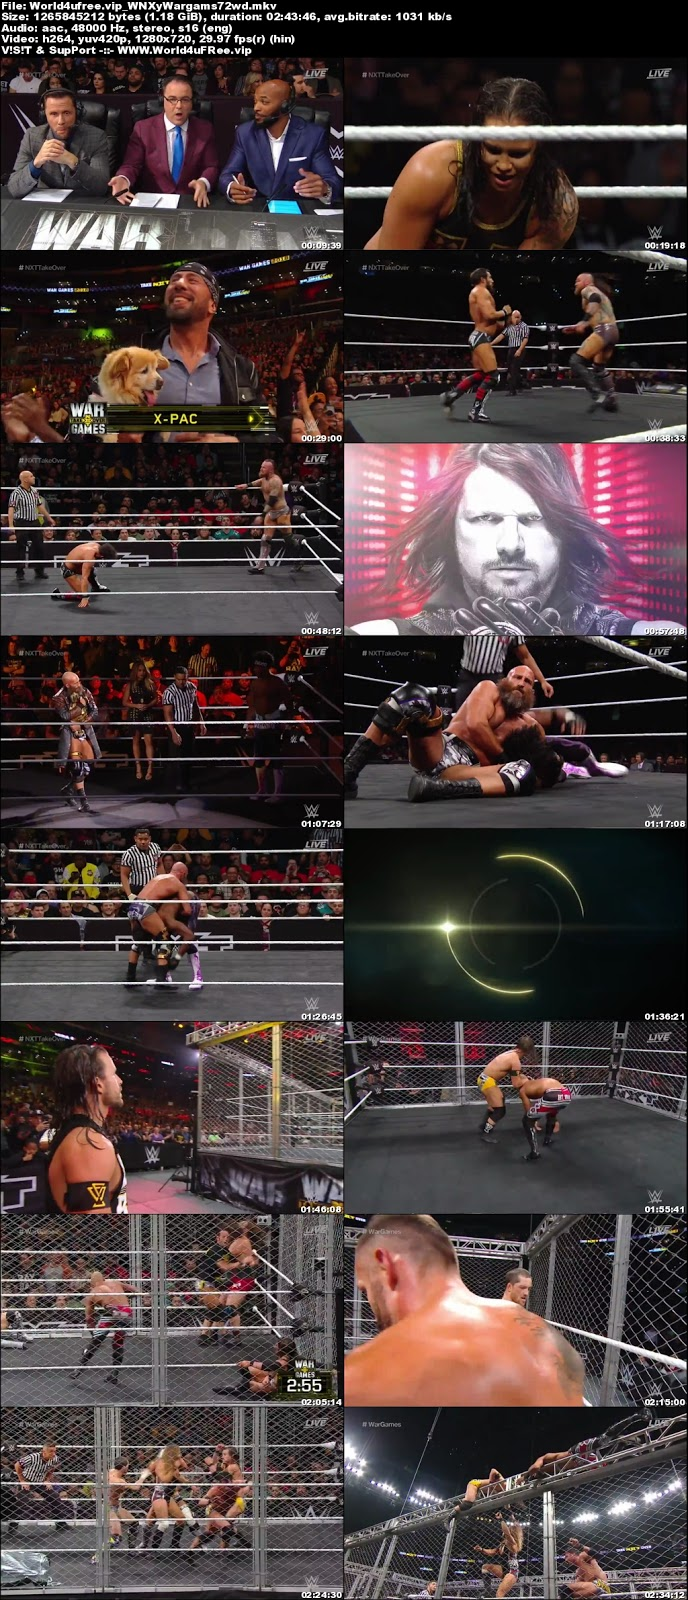 Wwe Nxt Takeover Wargames II 18 November 2018 WEBRip 720p 1.1Gb tv show wwe Wwe Nxt Takeover Wargames 18 November 2018 HDTV 720p 300MB x264 compressed small size free download or watch online at world4ufree.vip